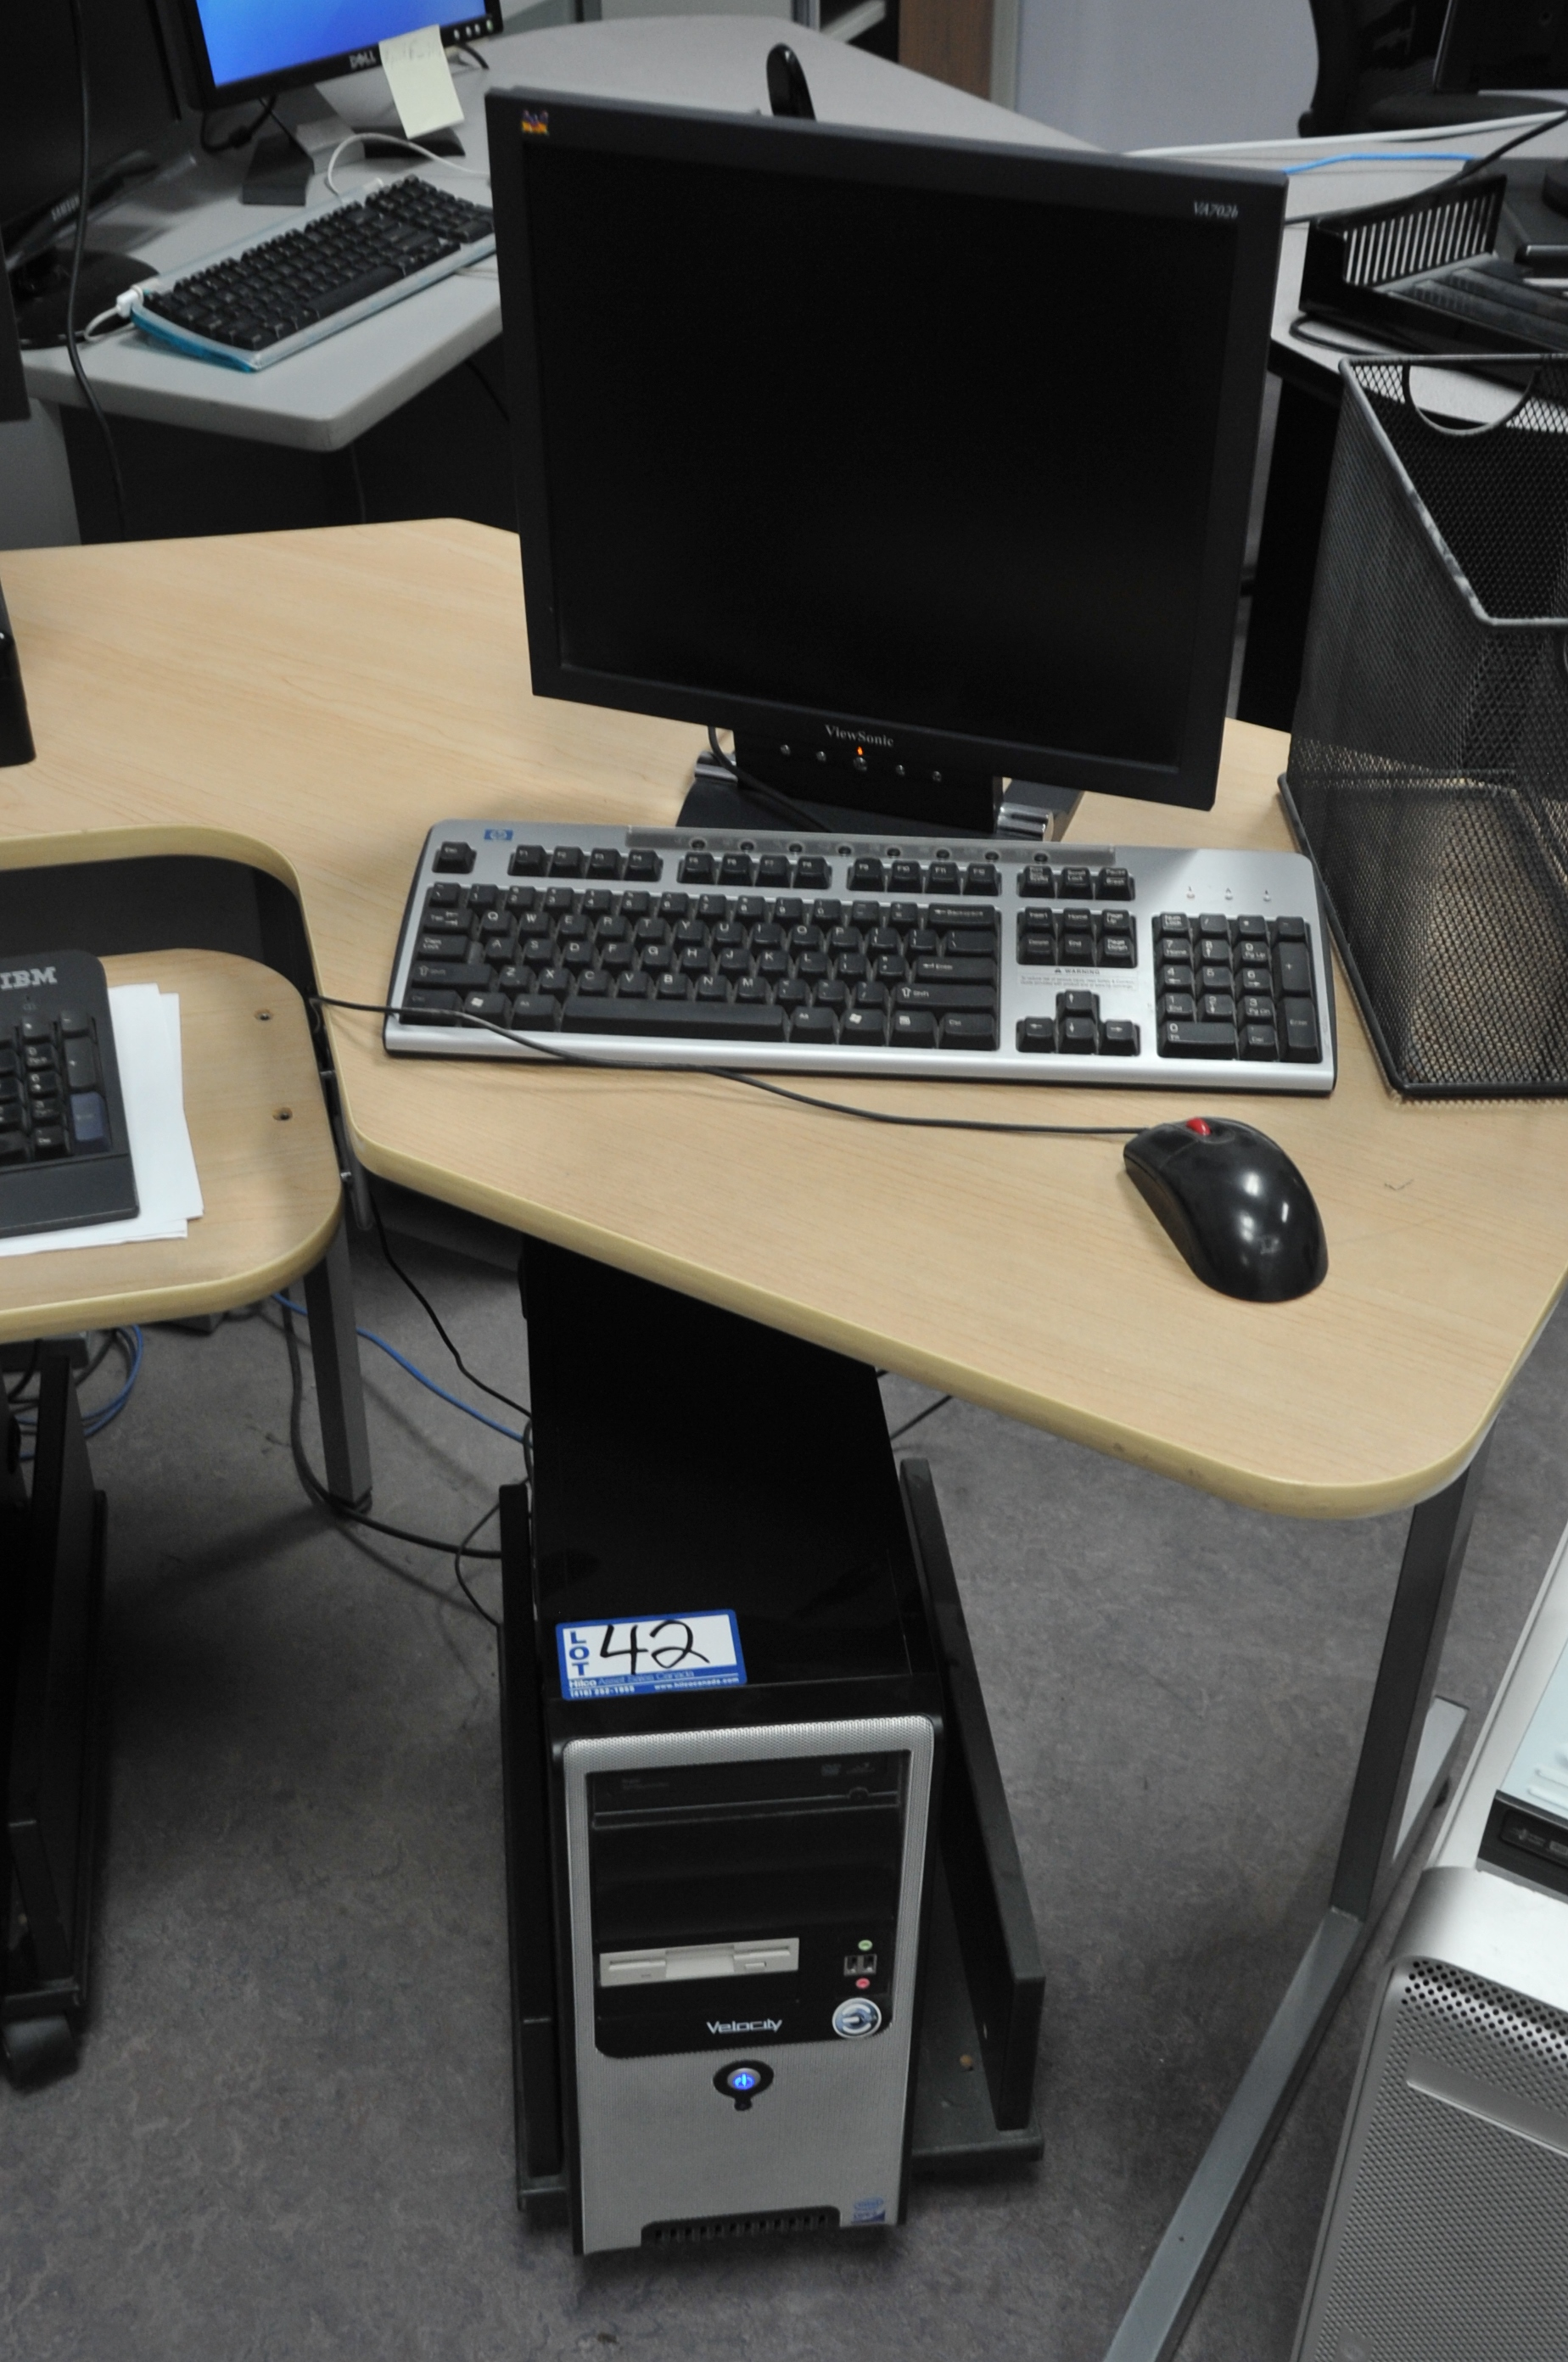 Velocity Model Core 2 Duo Computer; with LCD Monitor